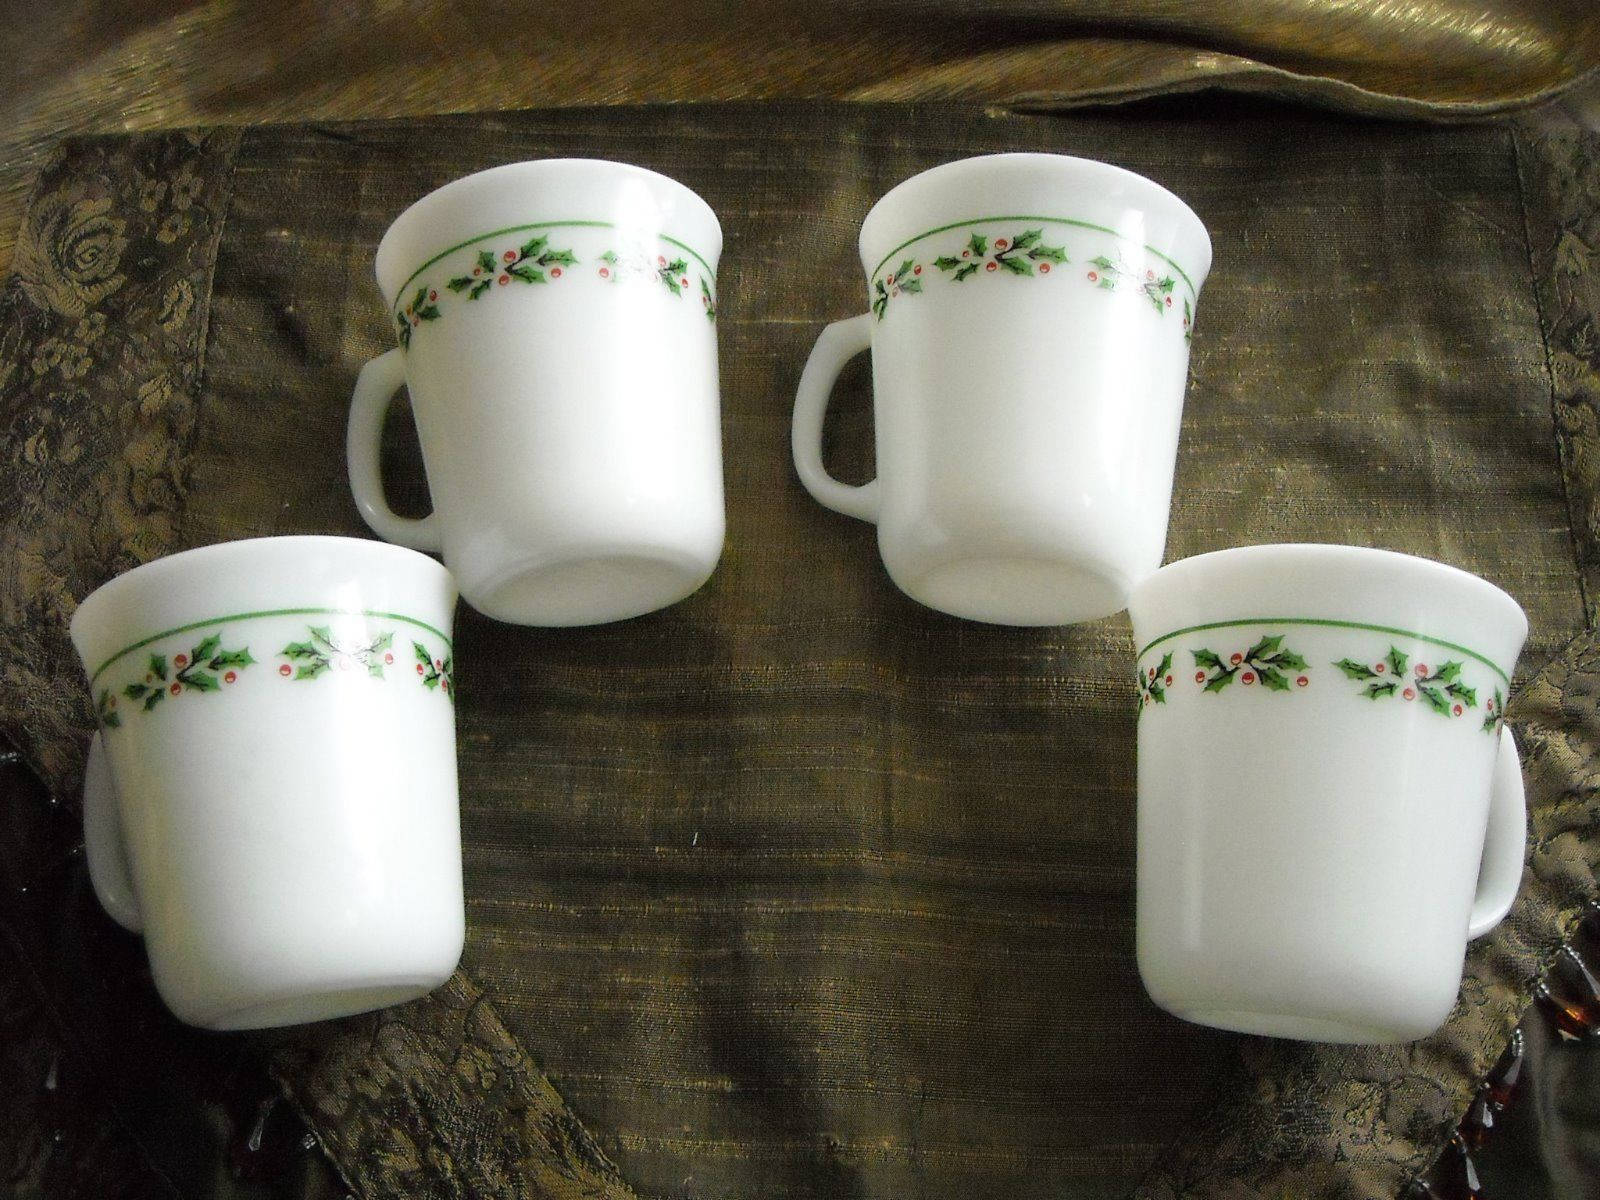 Vintage Corning Ware Coffee Cups Mugs Holly & Berry Trim Set of 4 Milk Glass